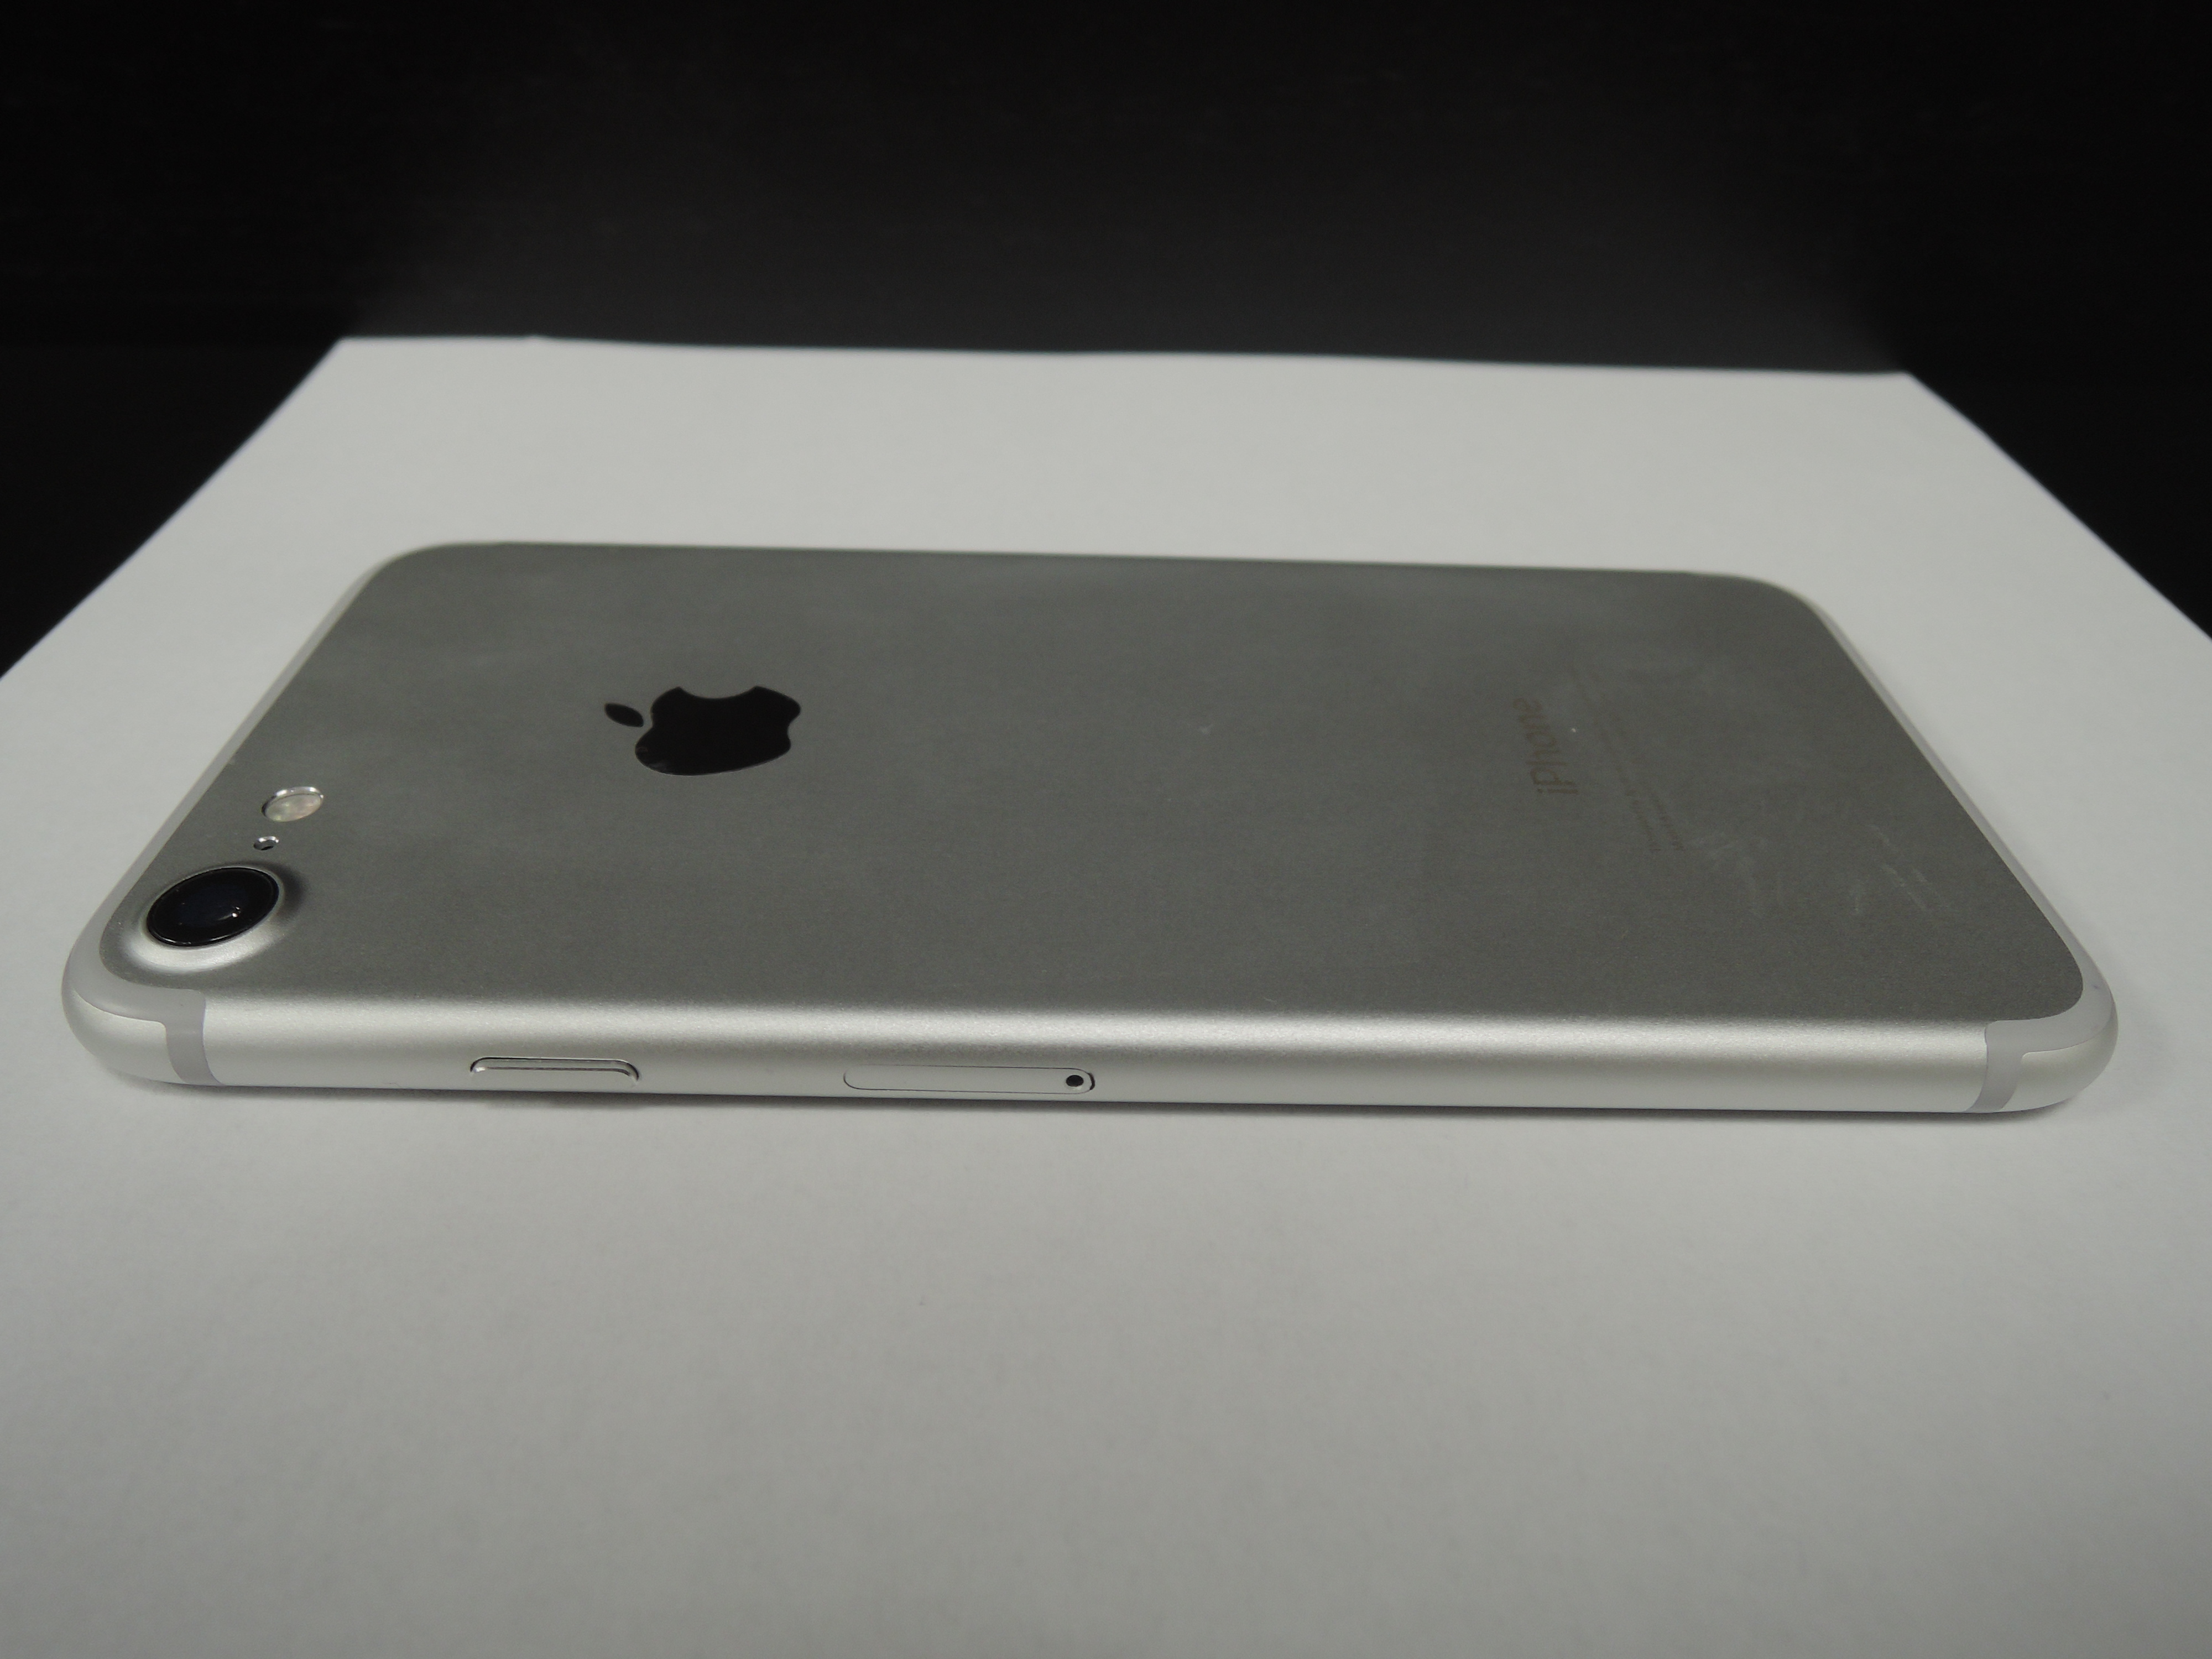 Apple iPhone 6s 128GB Space Gray - DPH